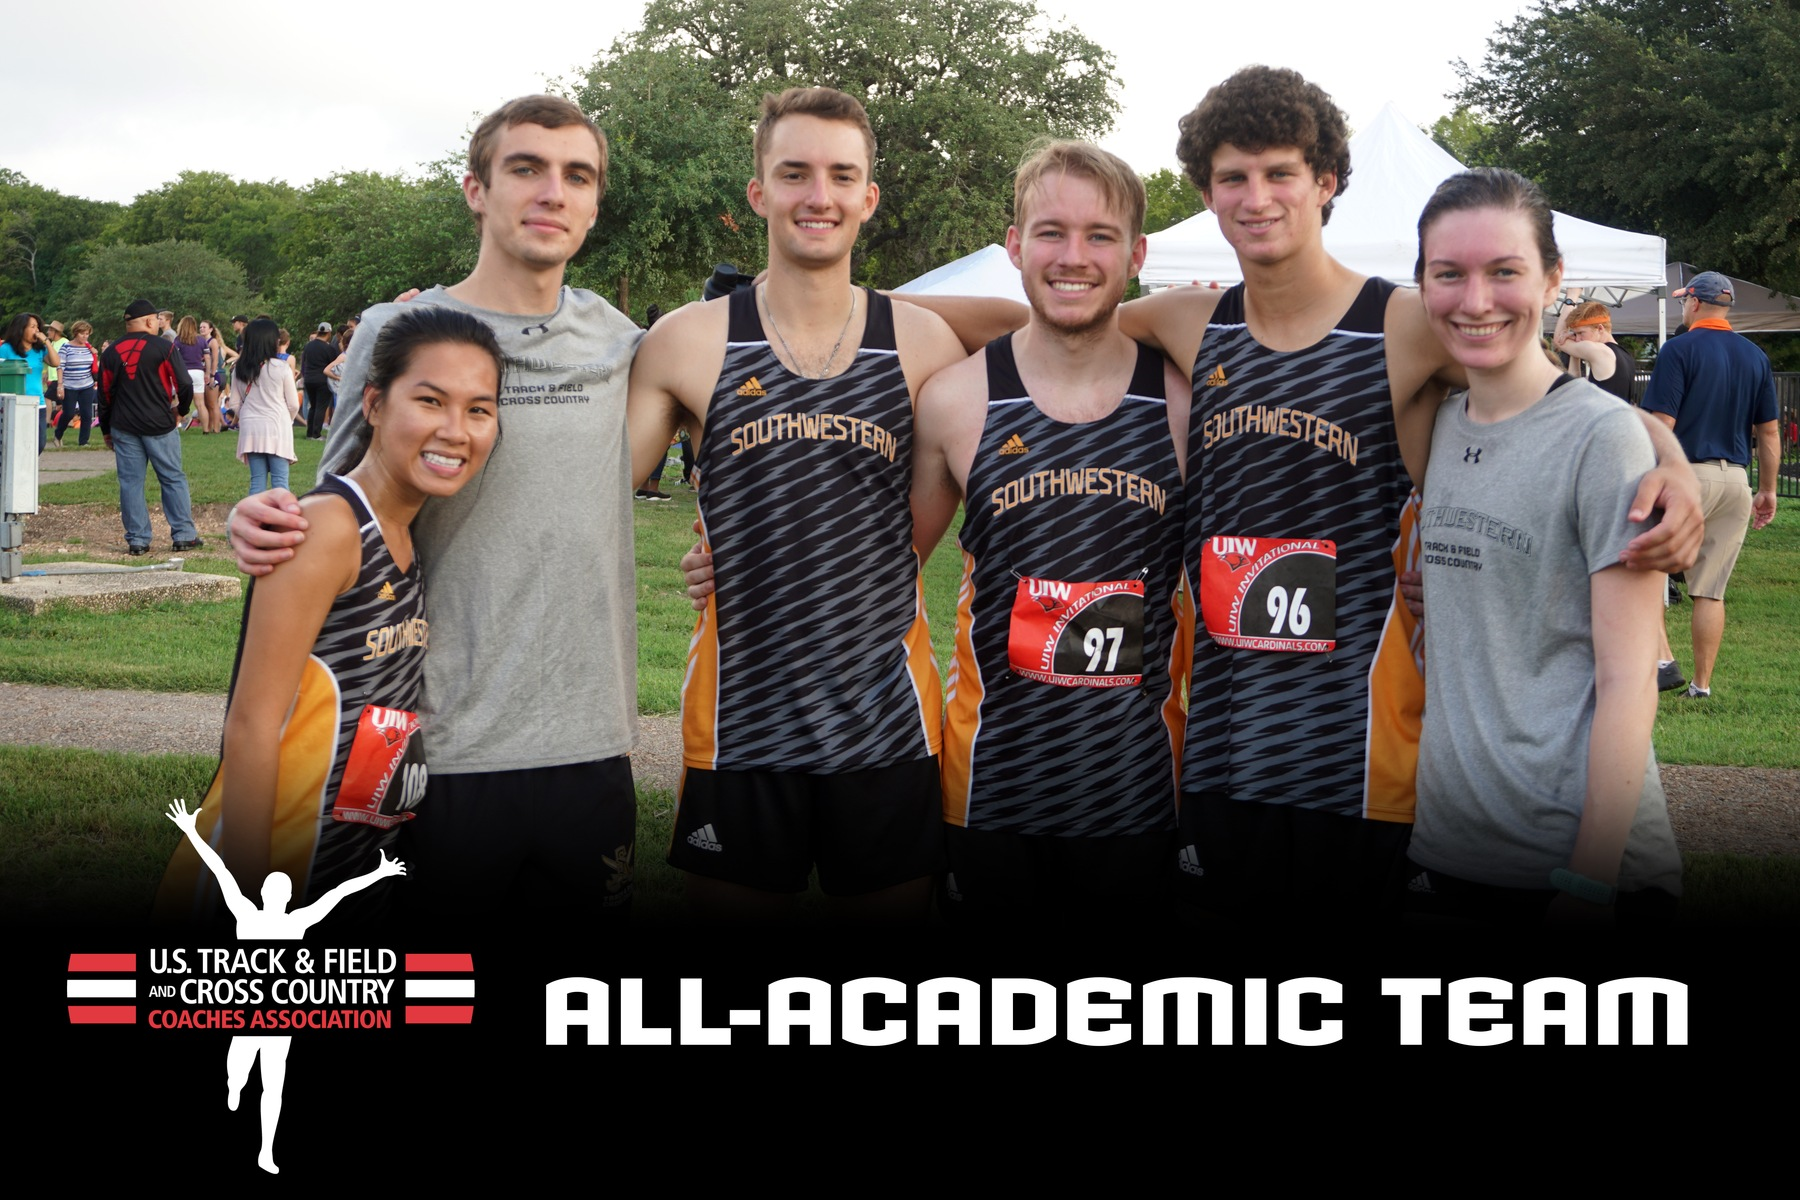 Southwestern Cross Country Teams Named to USTFCCCA All-Academic Teams